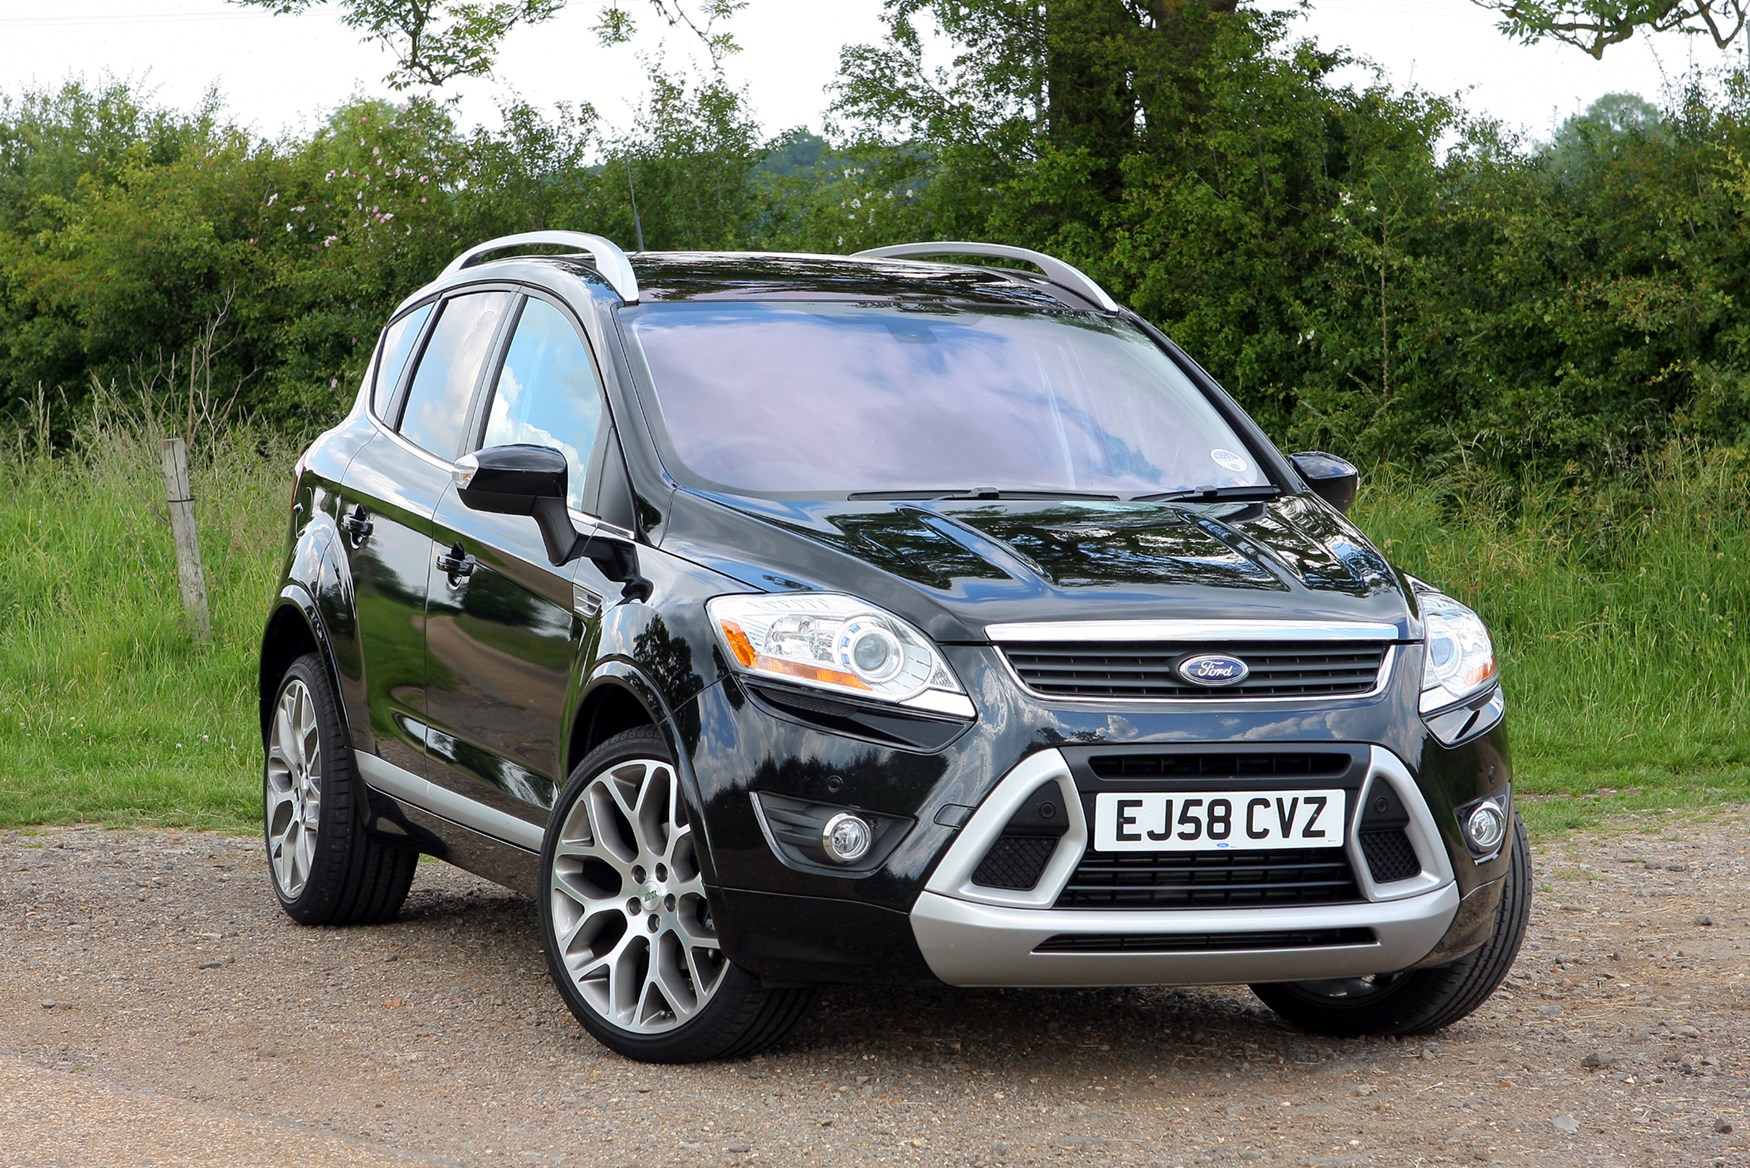 Car Ford Kuga: reviews of owners, specifications and features 71